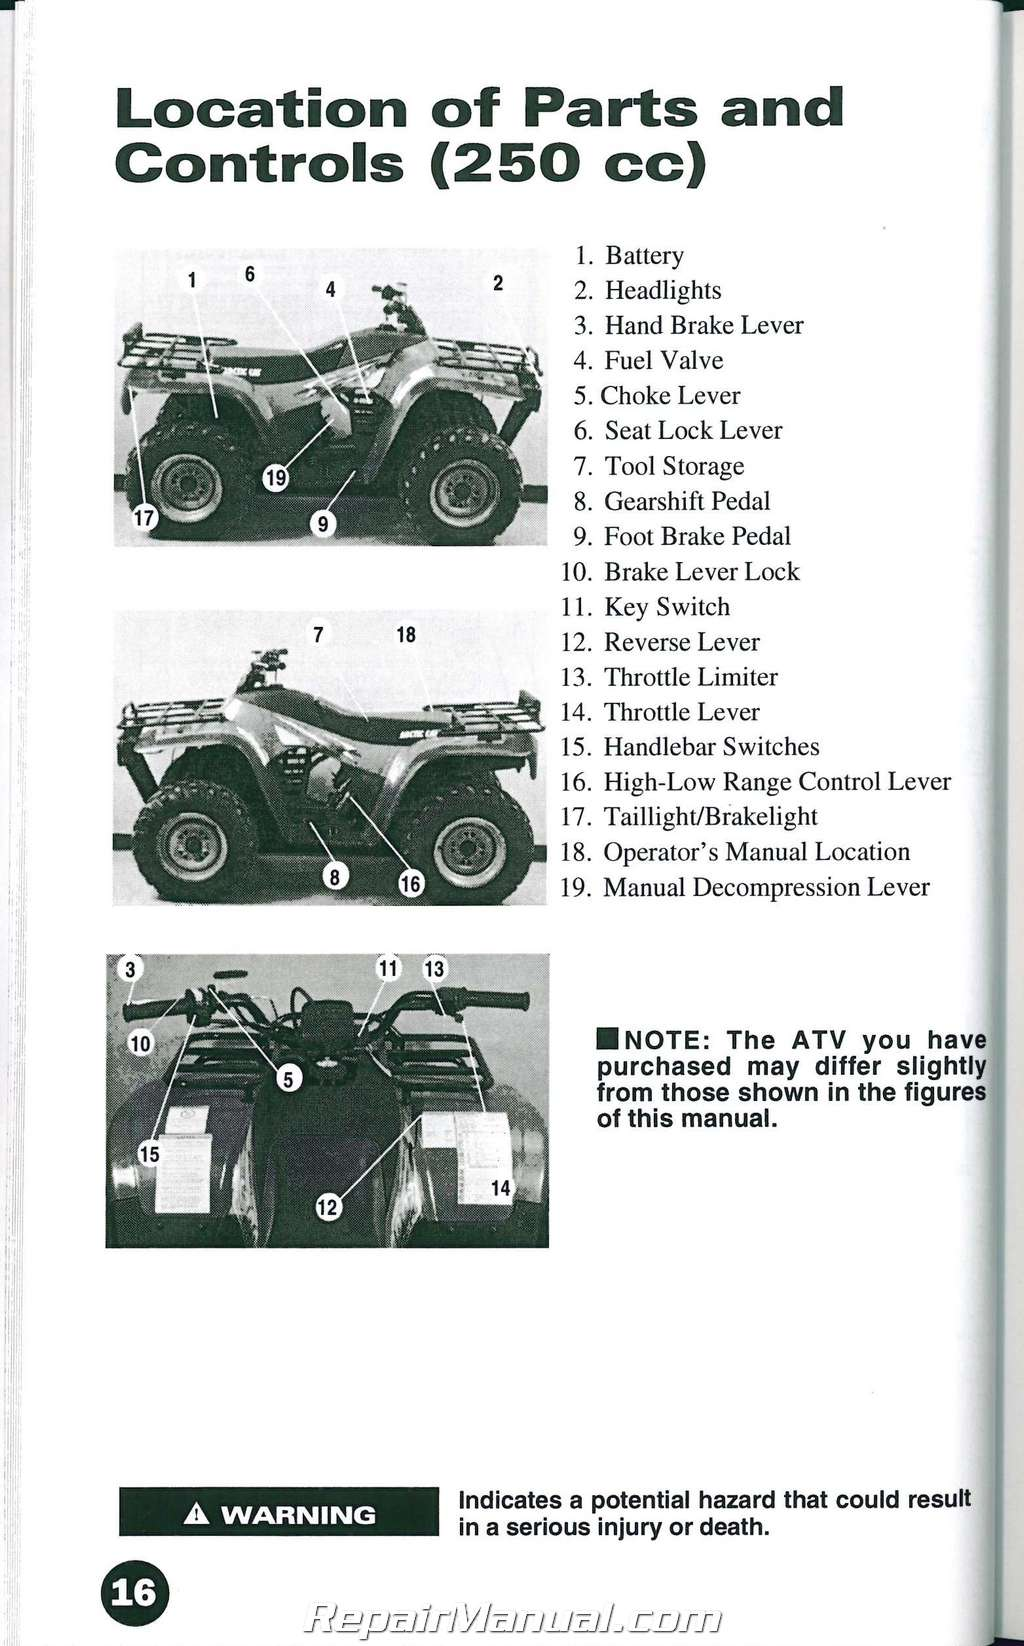 1999 Arctic Cat ATV Owners Manual – (Covers All Models)